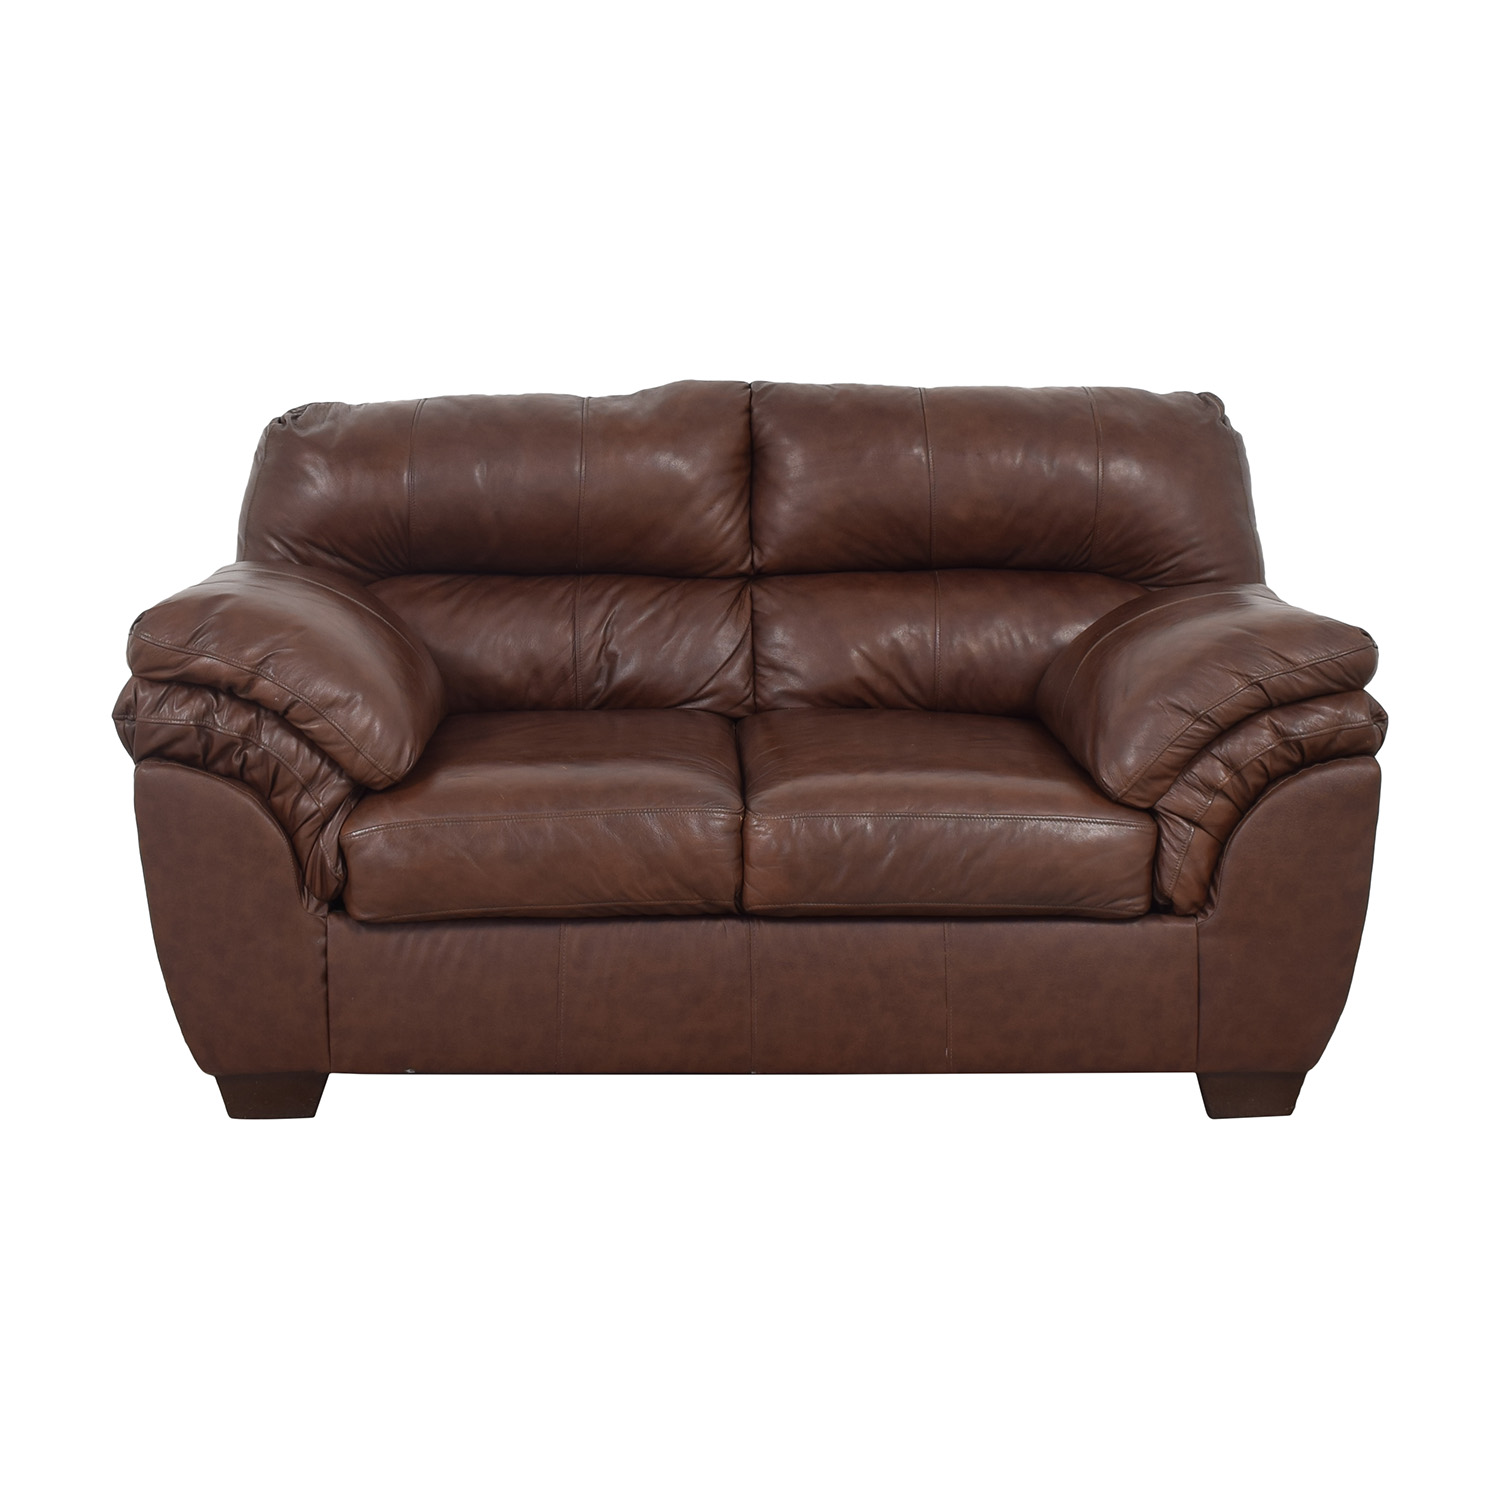 Ashley Furniture Ashley Furniture Overstuffed Loveseat ma